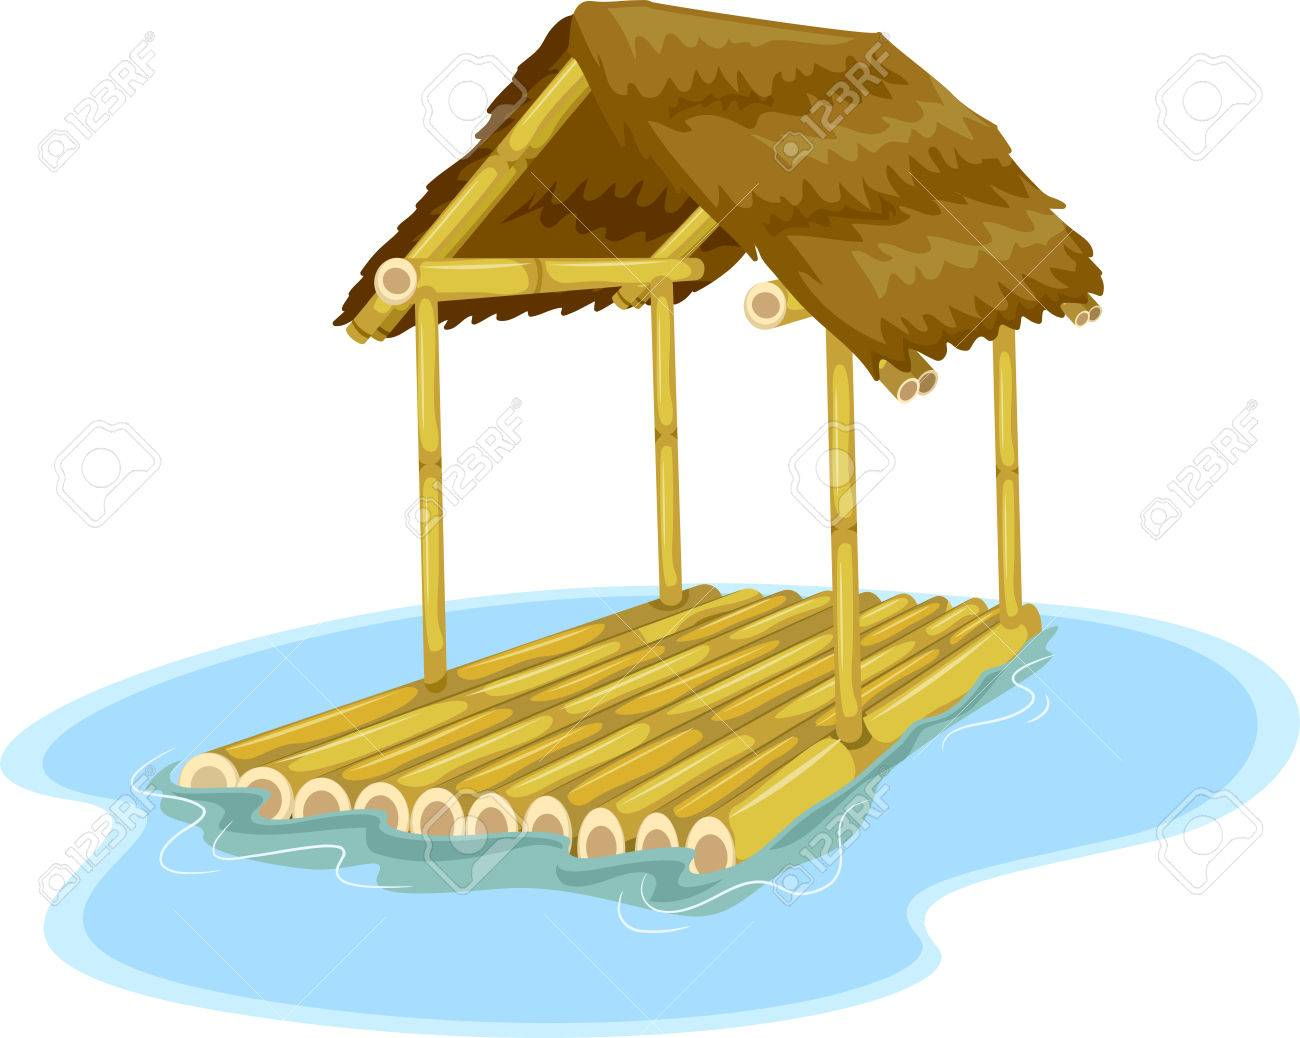 Illustration Featuring A Floating Hut Attached To A Bamboo Raft - Picnic table raft